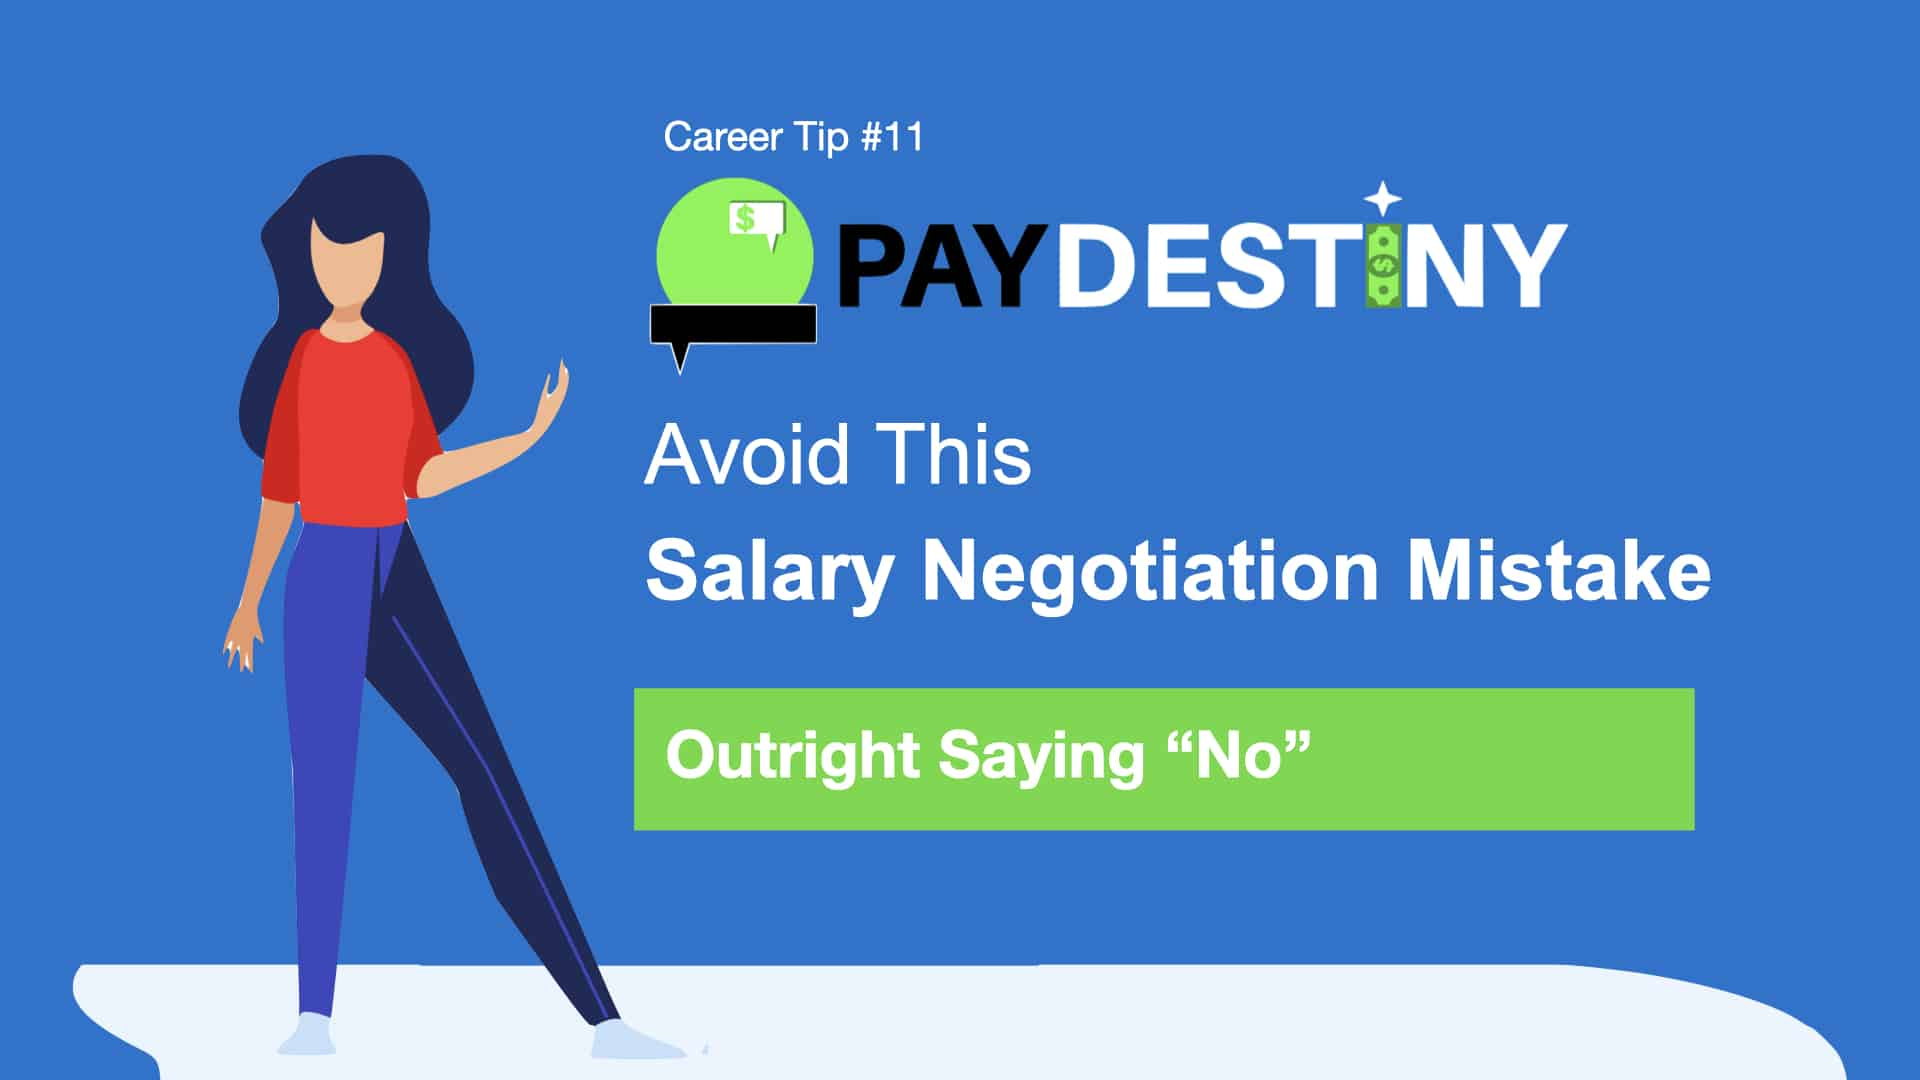 Salary Negotiation Mistake (Outright Saying No)